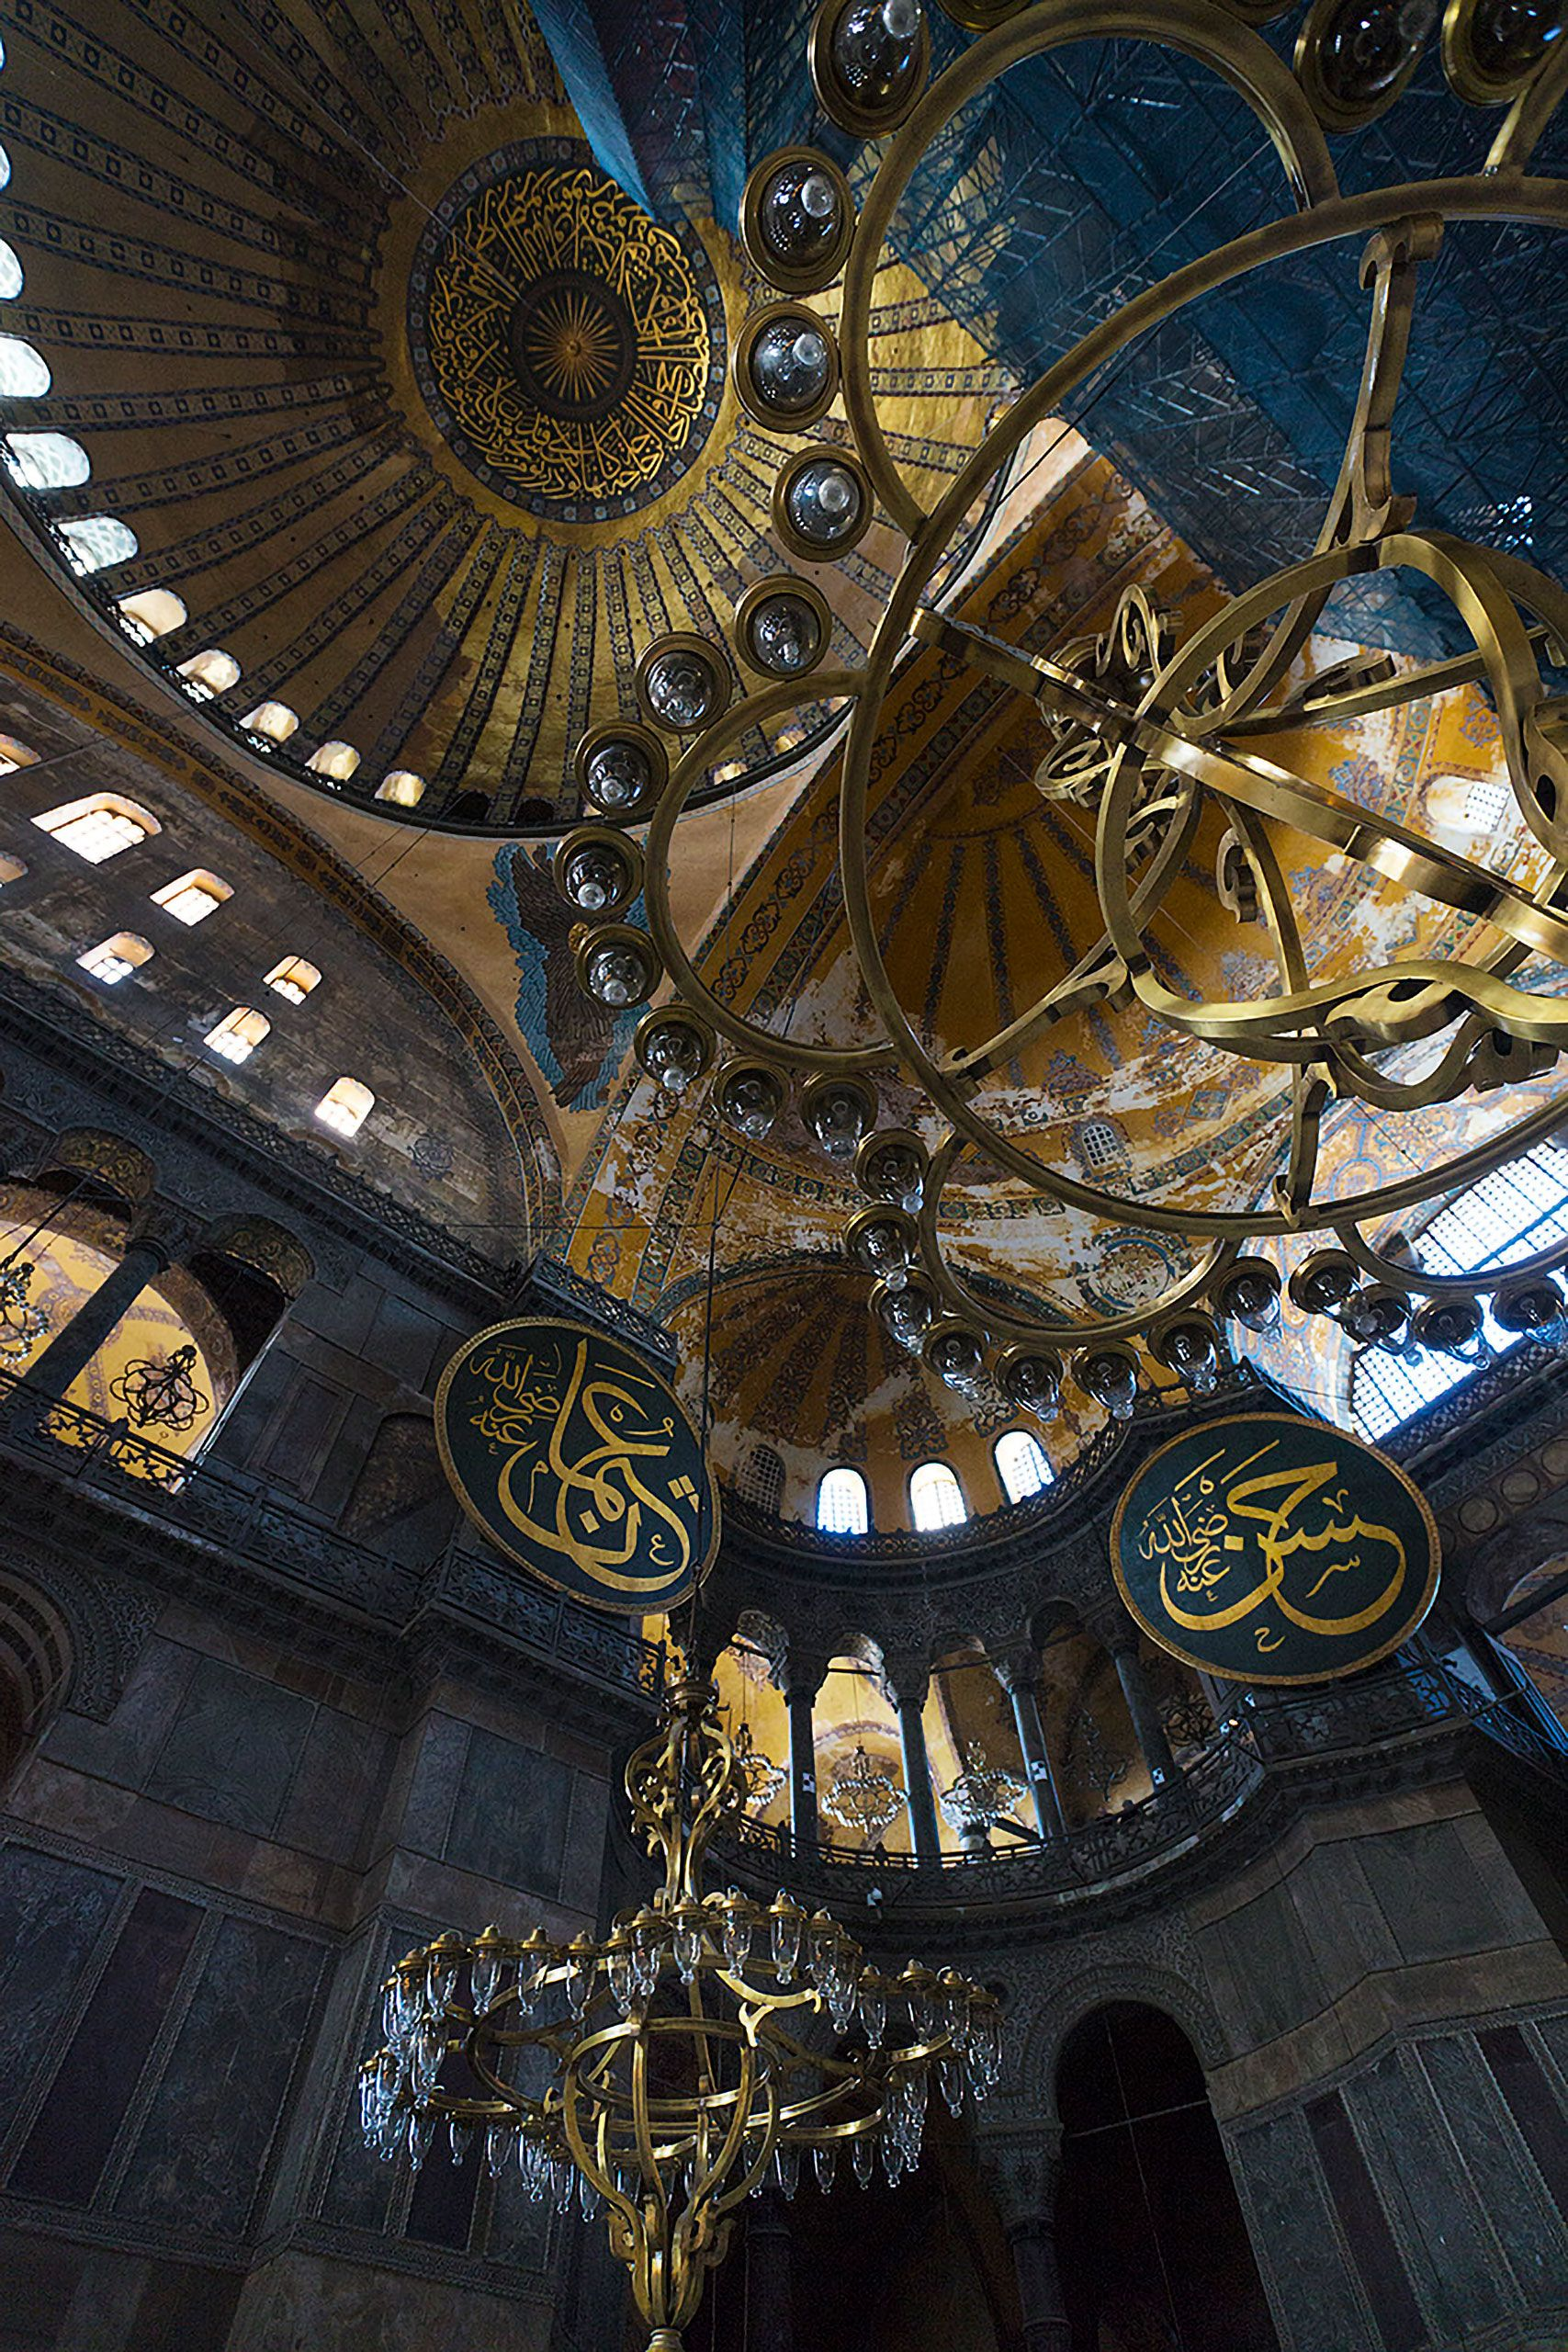 chandeliers down for cleaning hagia sophia Mosque in Istanbul Turkey